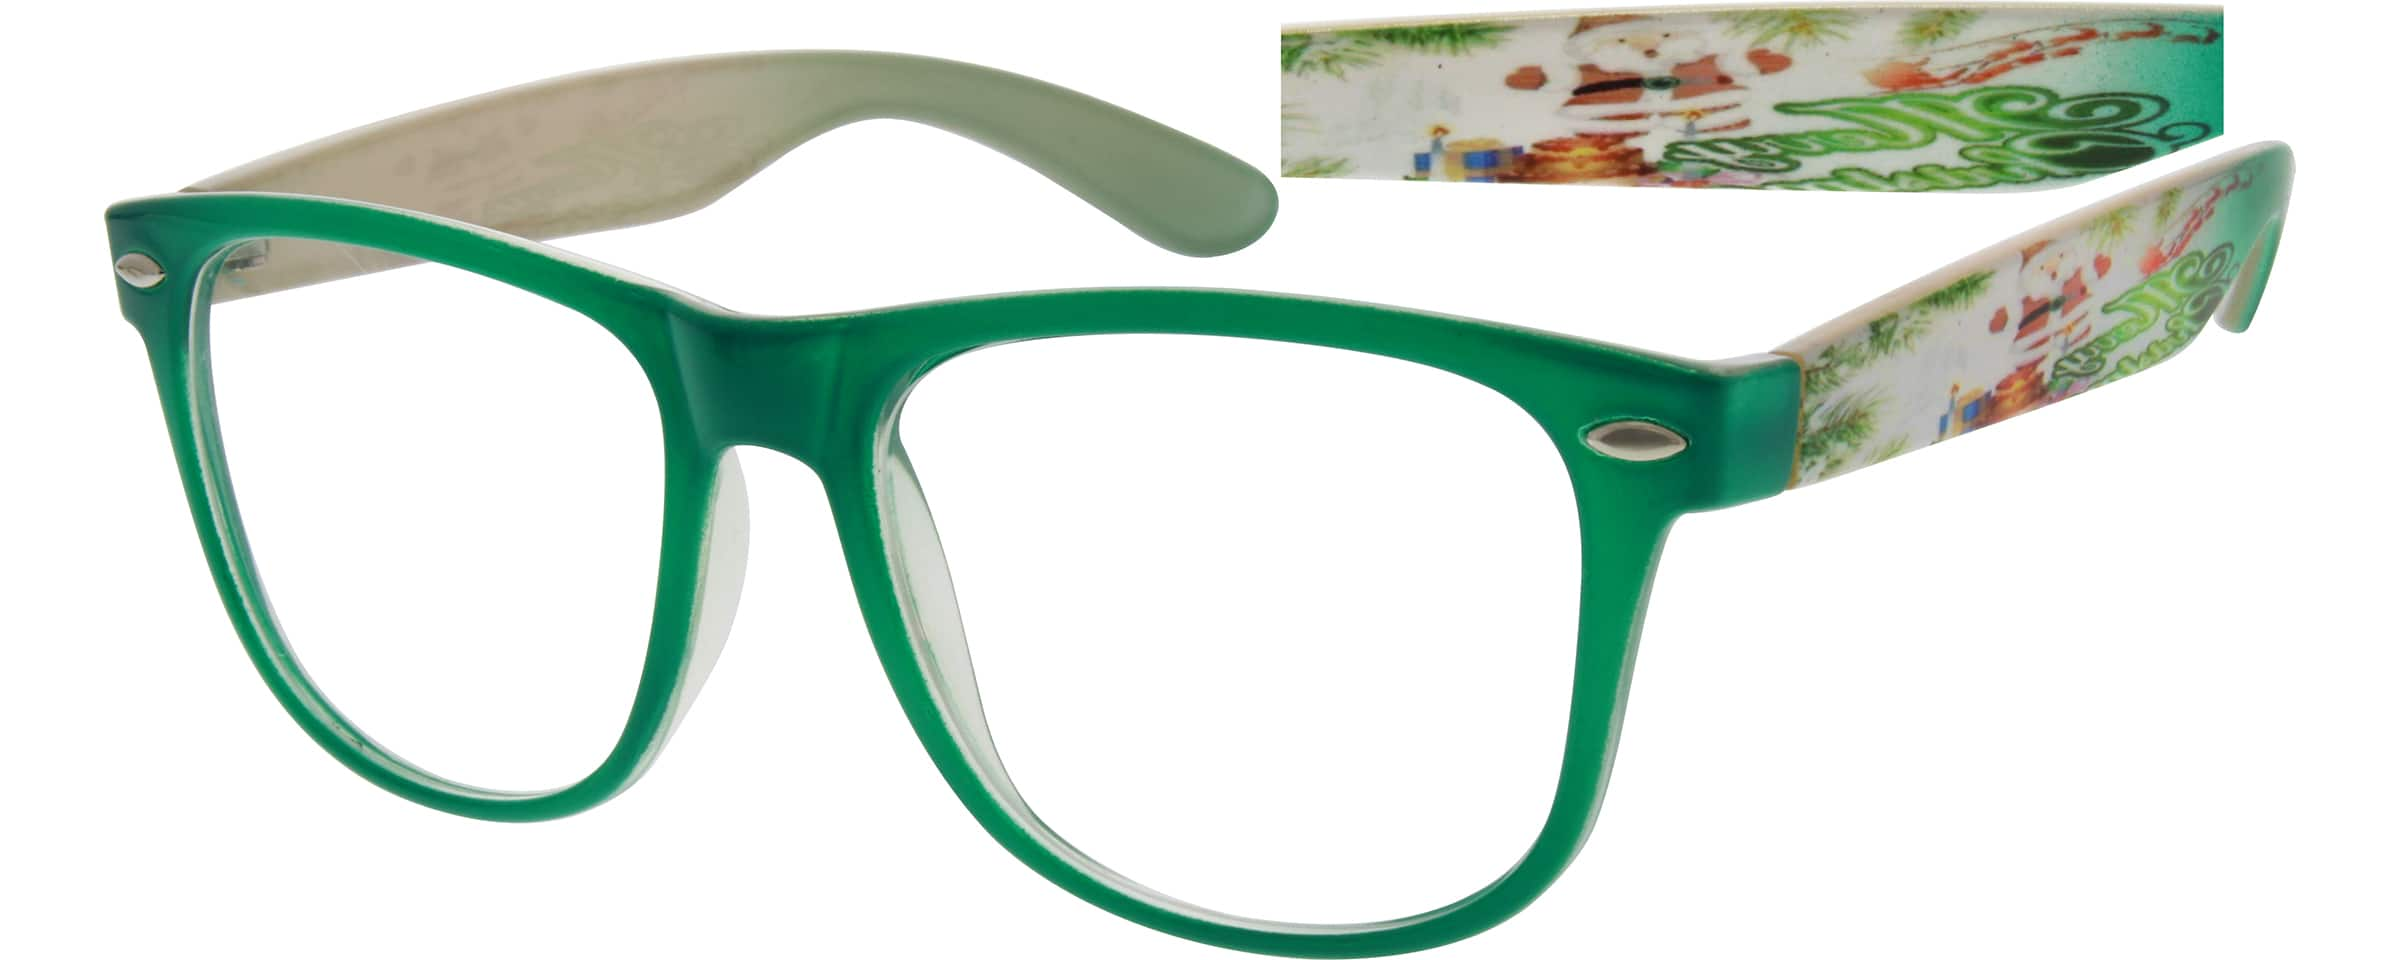 Green Plastic Full-Rim Frame #2846 Zenni Optical Eyeglasses